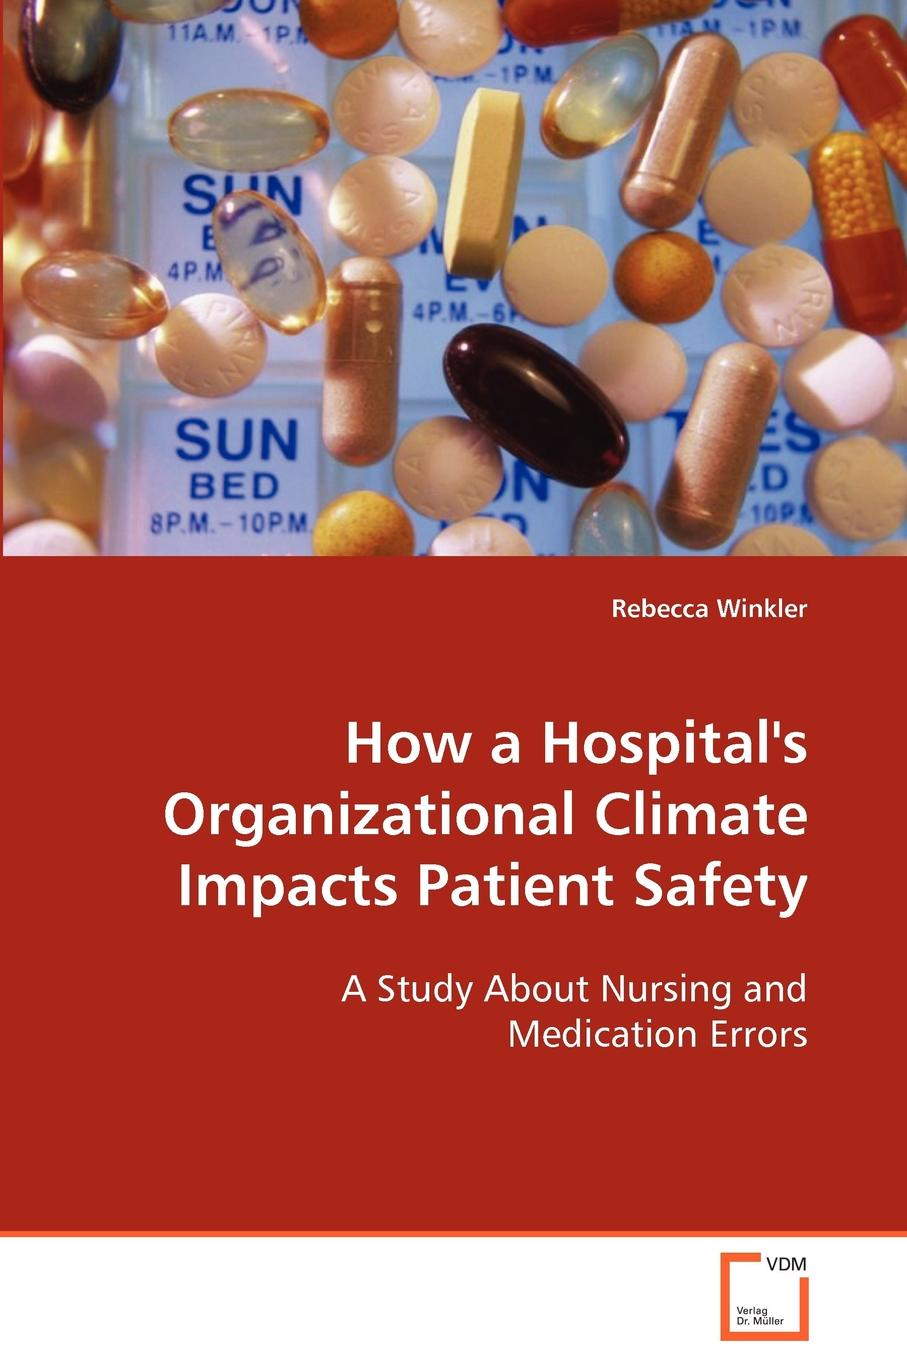 Rebecca Winkler How a Hospital.s Organizational Climate Impacts Patient Safety недорого